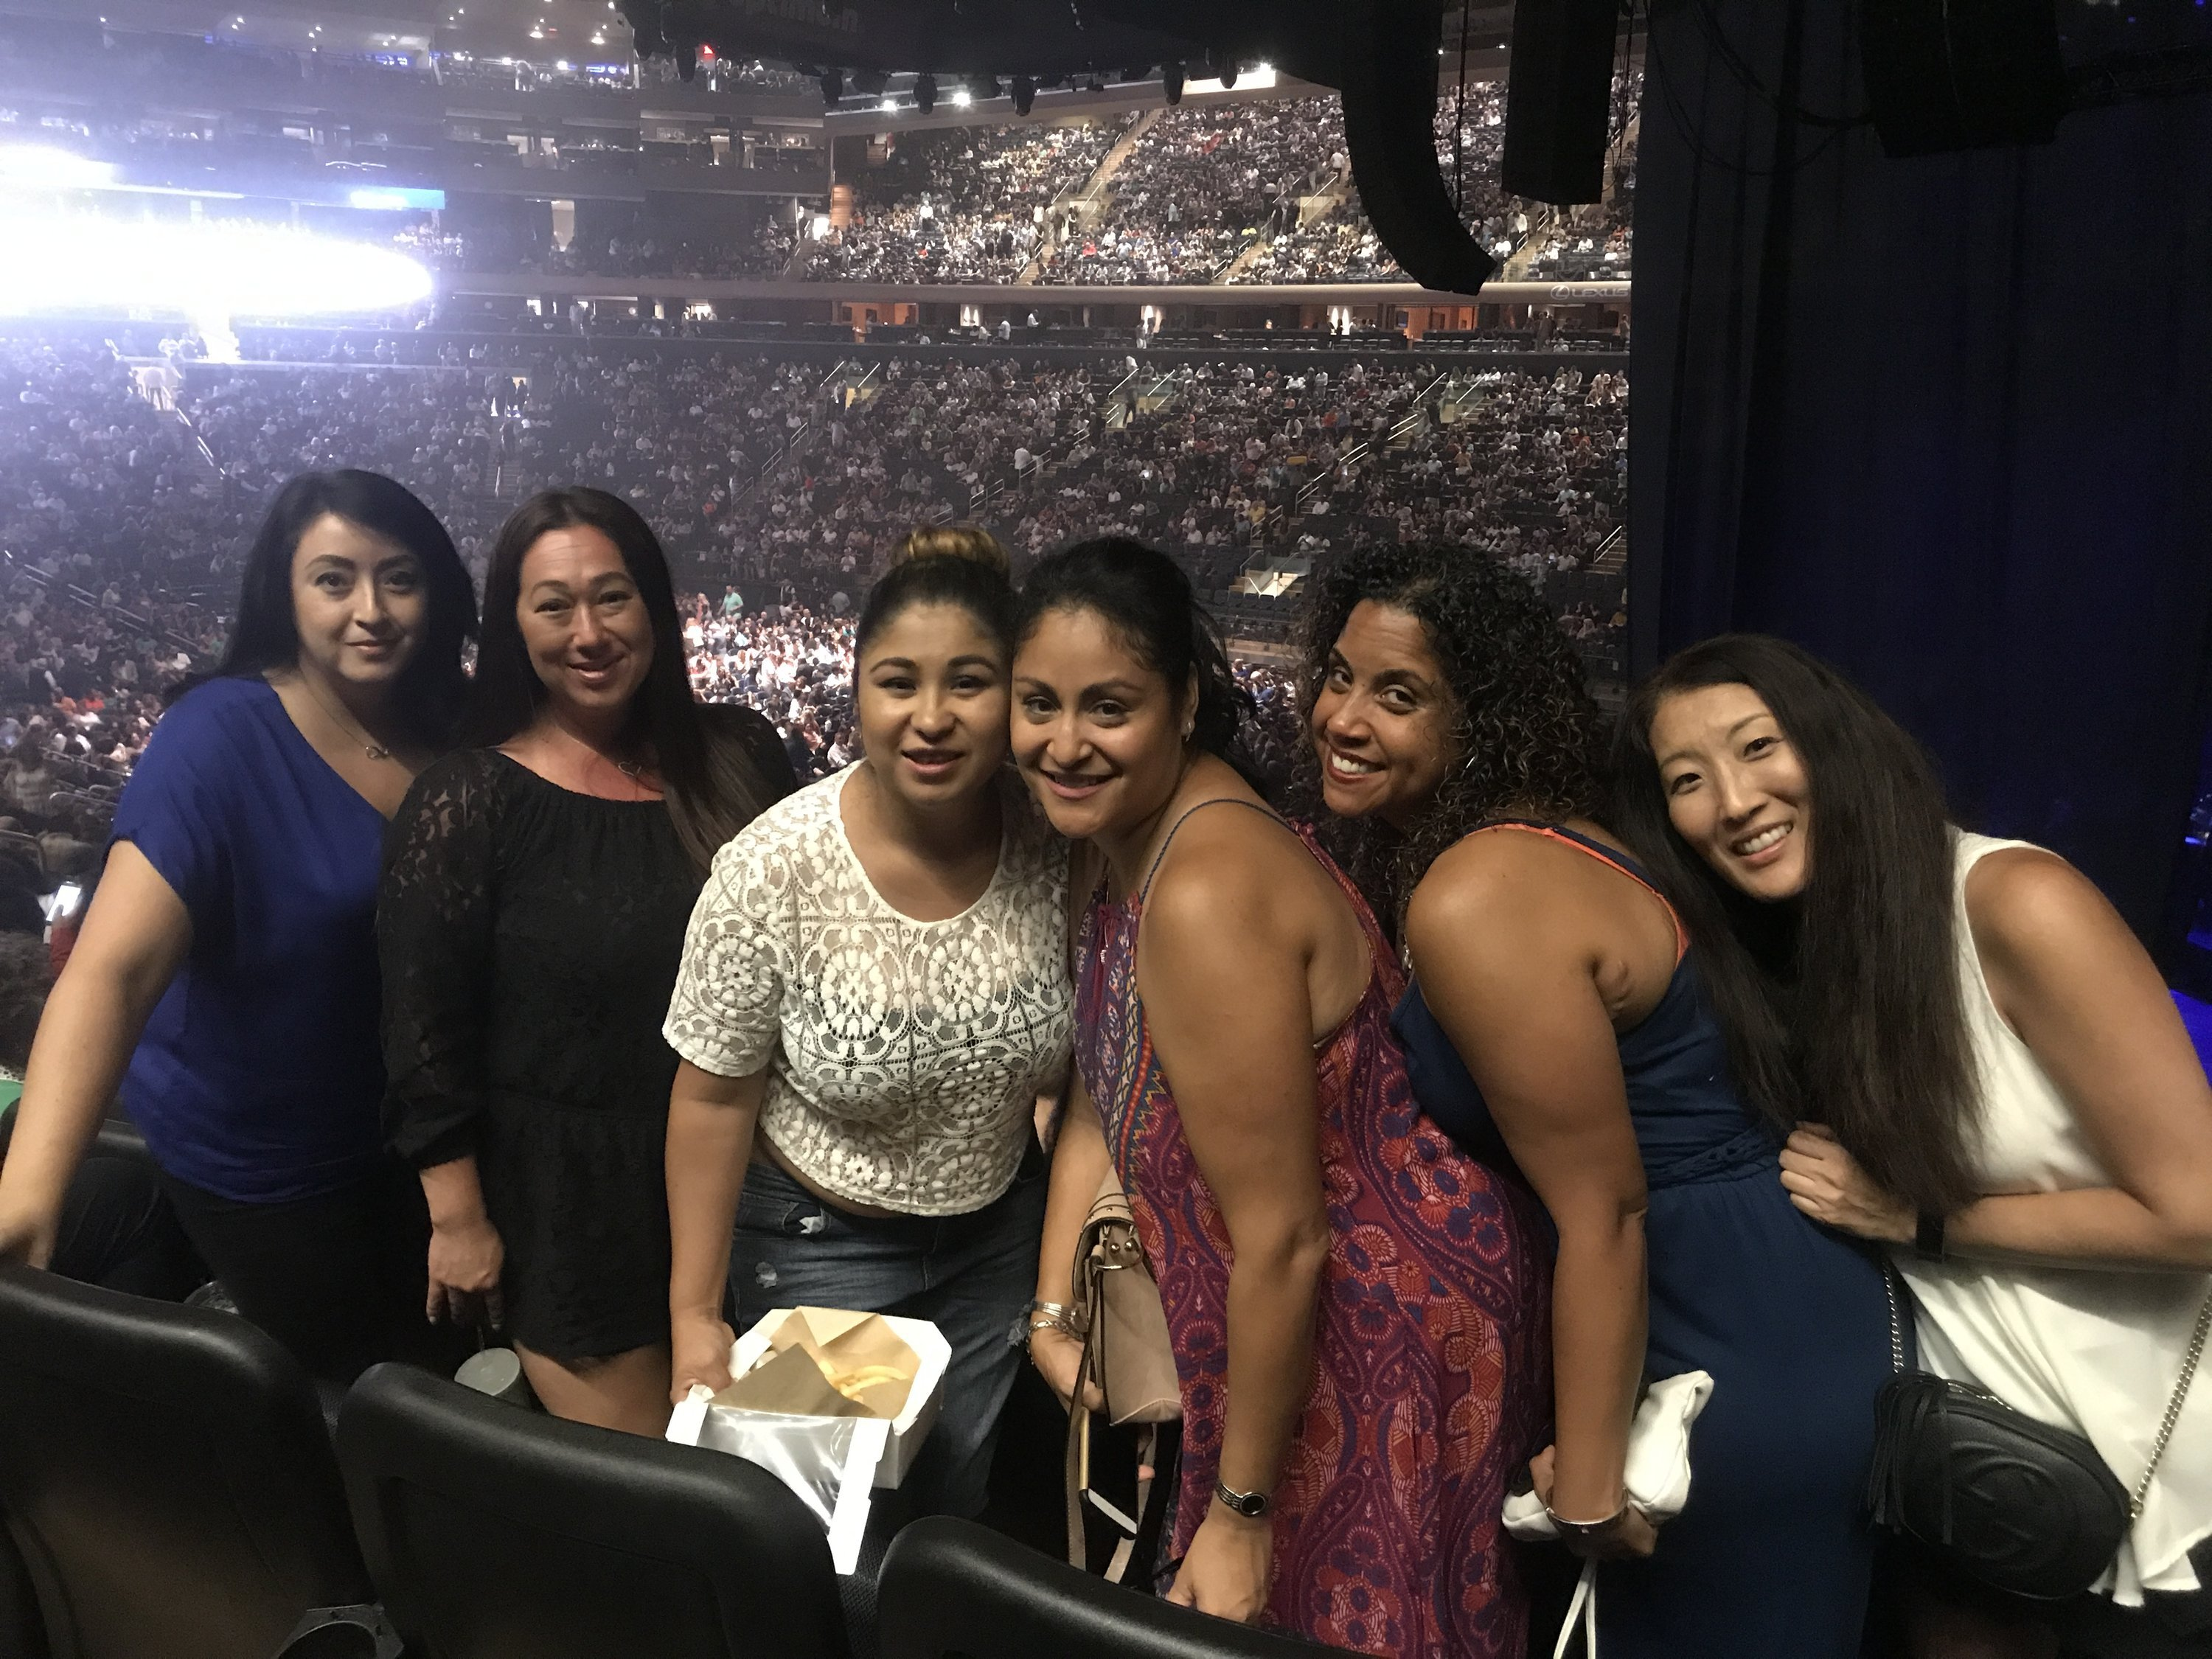 Thank you messages to veteran tickets foundation donors veronica attended lionel richie and very special guest mariah carey on aug 19th 2017 via vettix kristyandbryce Gallery